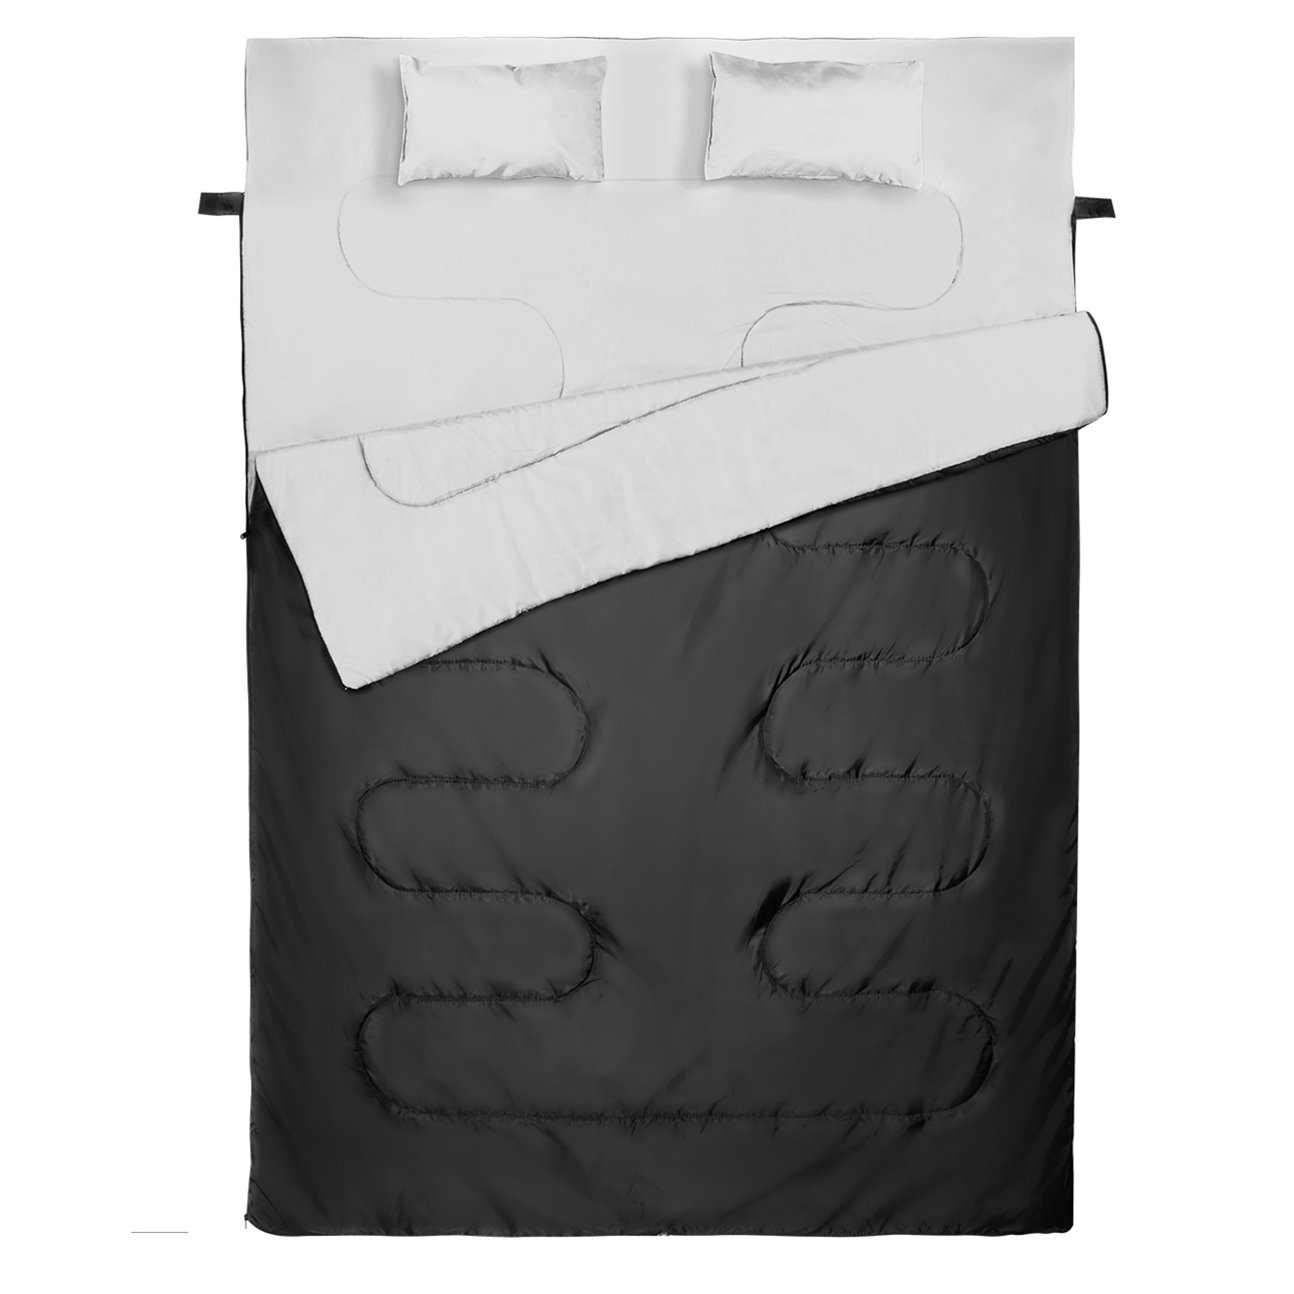 Ohuhu Double Sleeping Bag With 2 Pillows And A Carrying Bag For Camping Backp.. 18